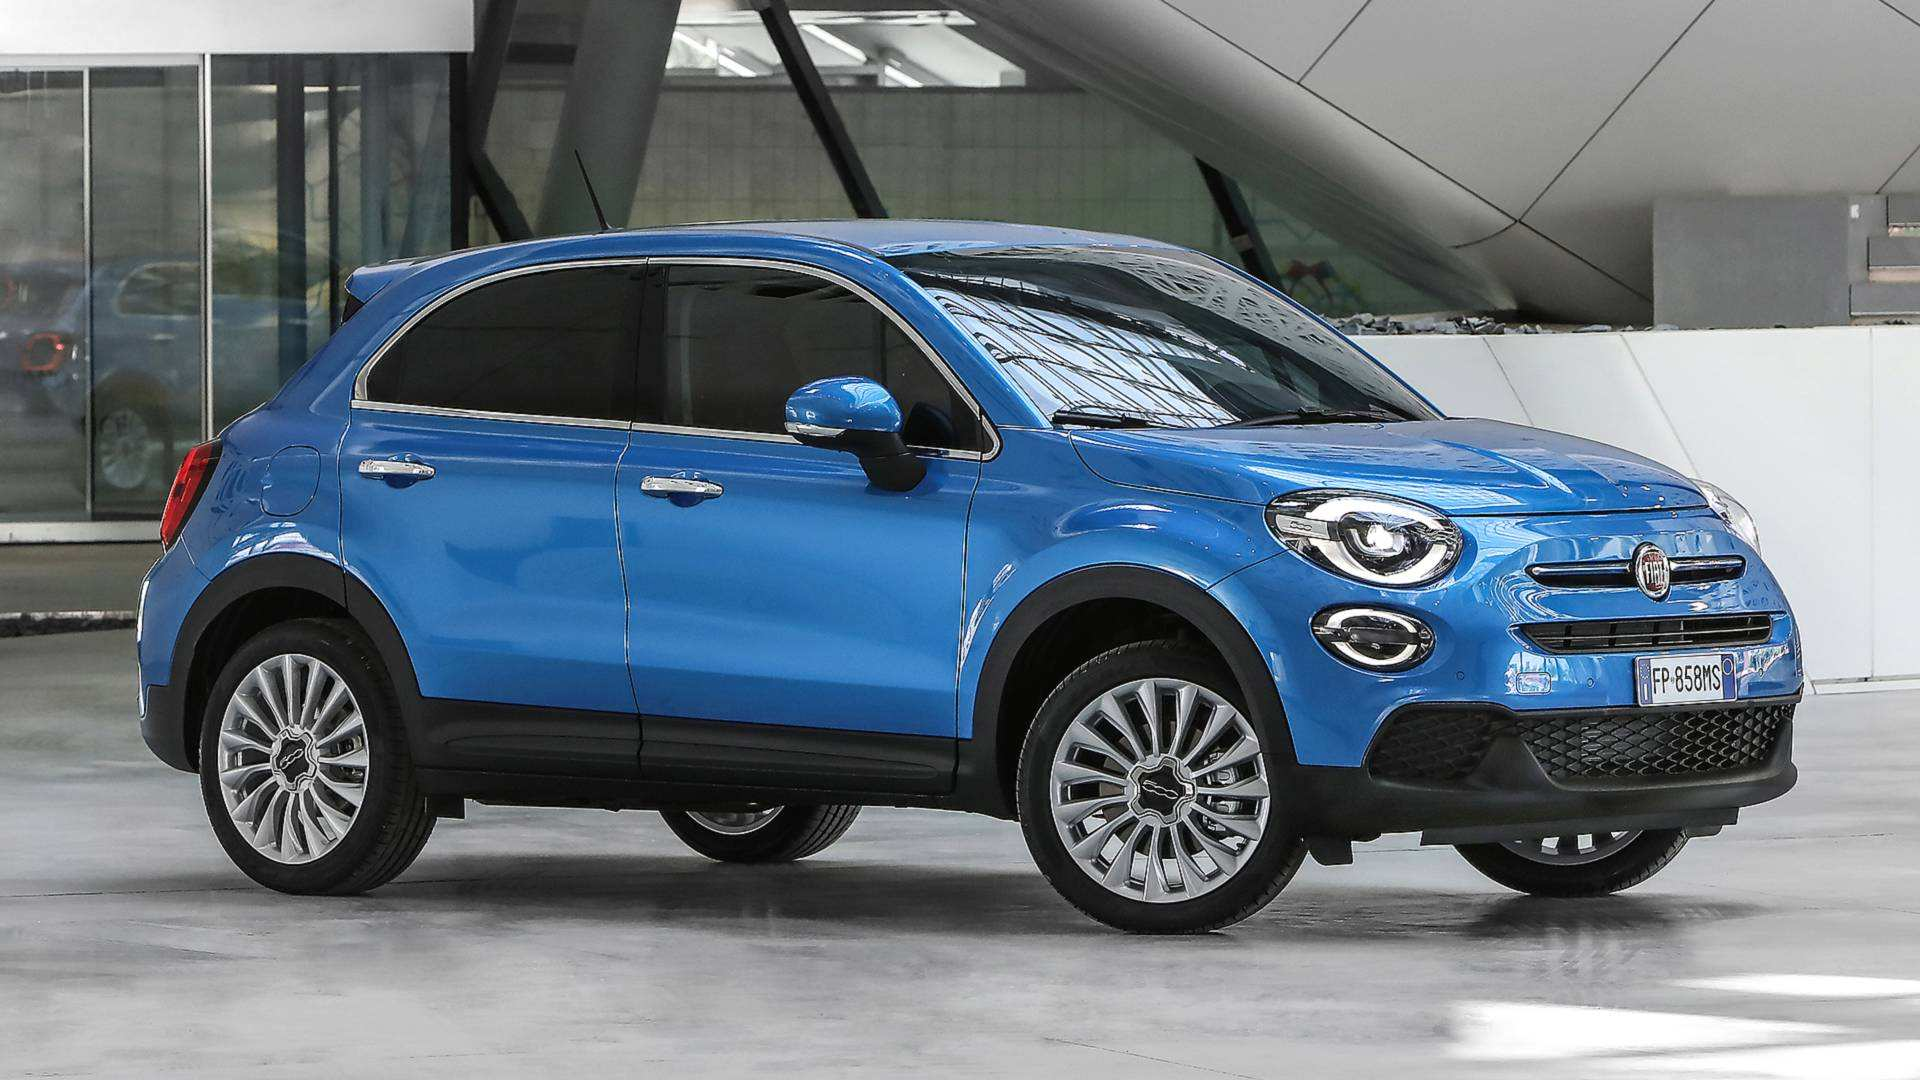 44 Best Review 2020 Fiat 500X Ratings for 2020 Fiat 500X